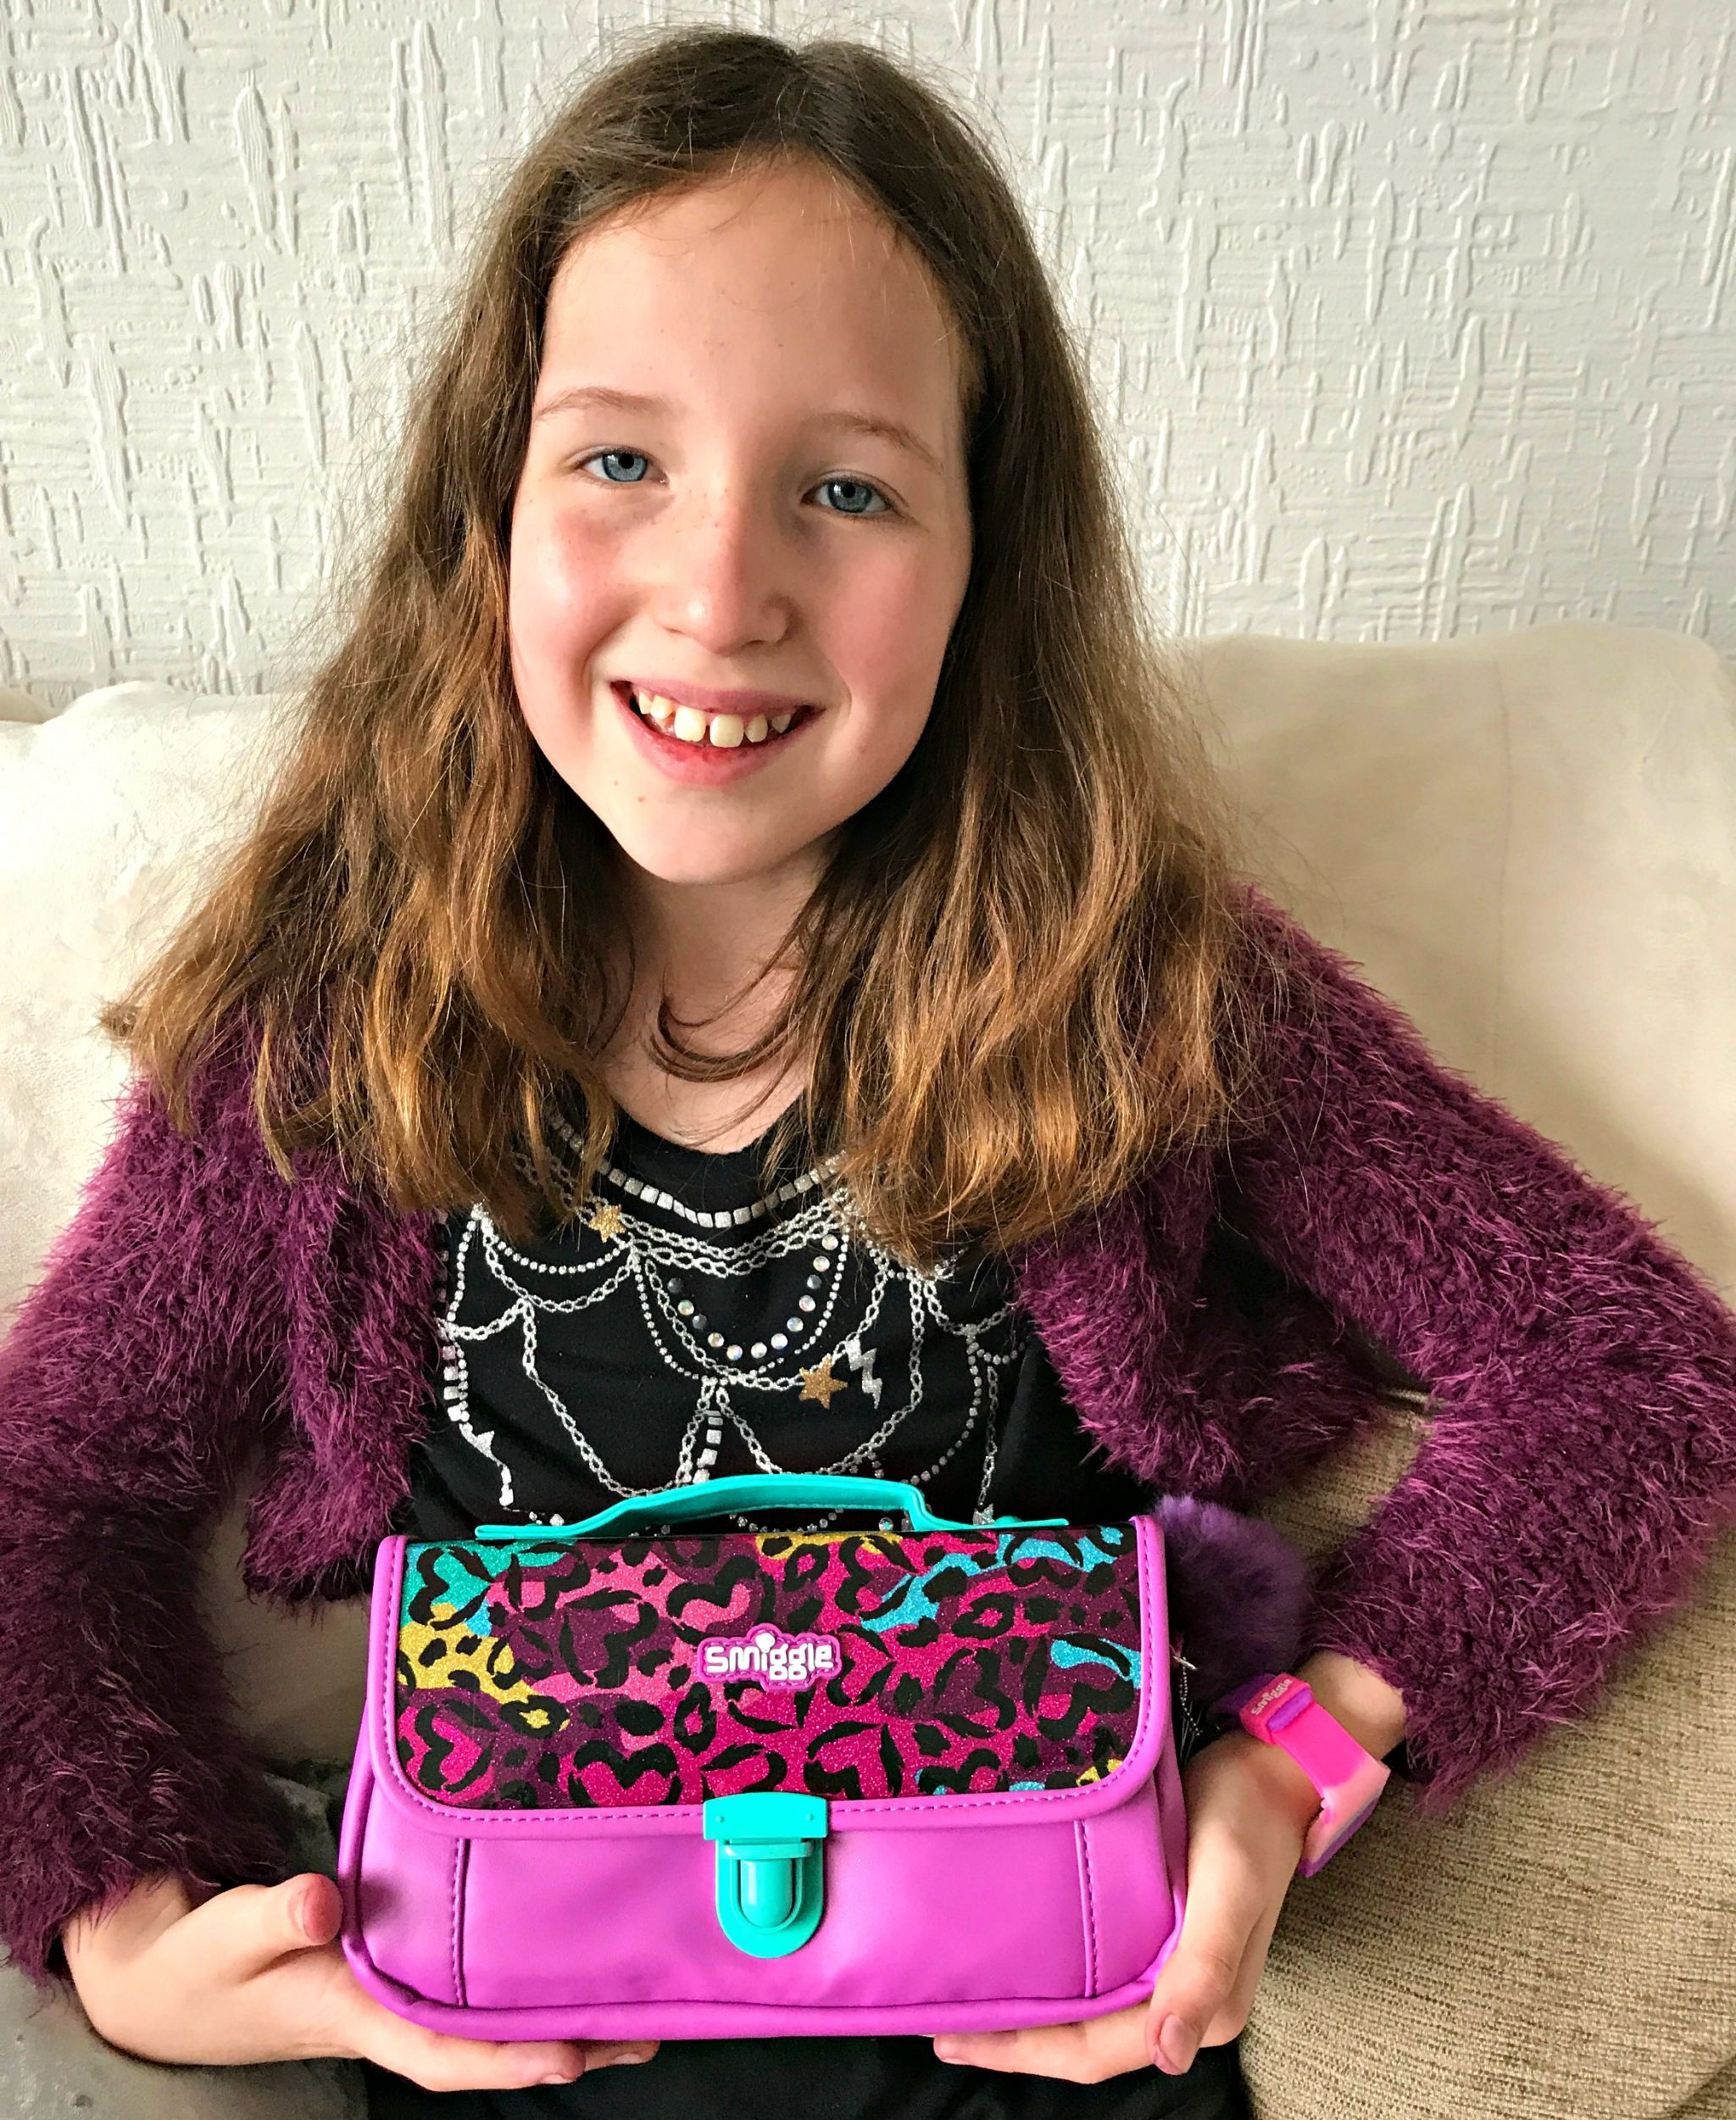 Caitlin holding Smiggle Handbag Pencil Case from the B2S2017 range